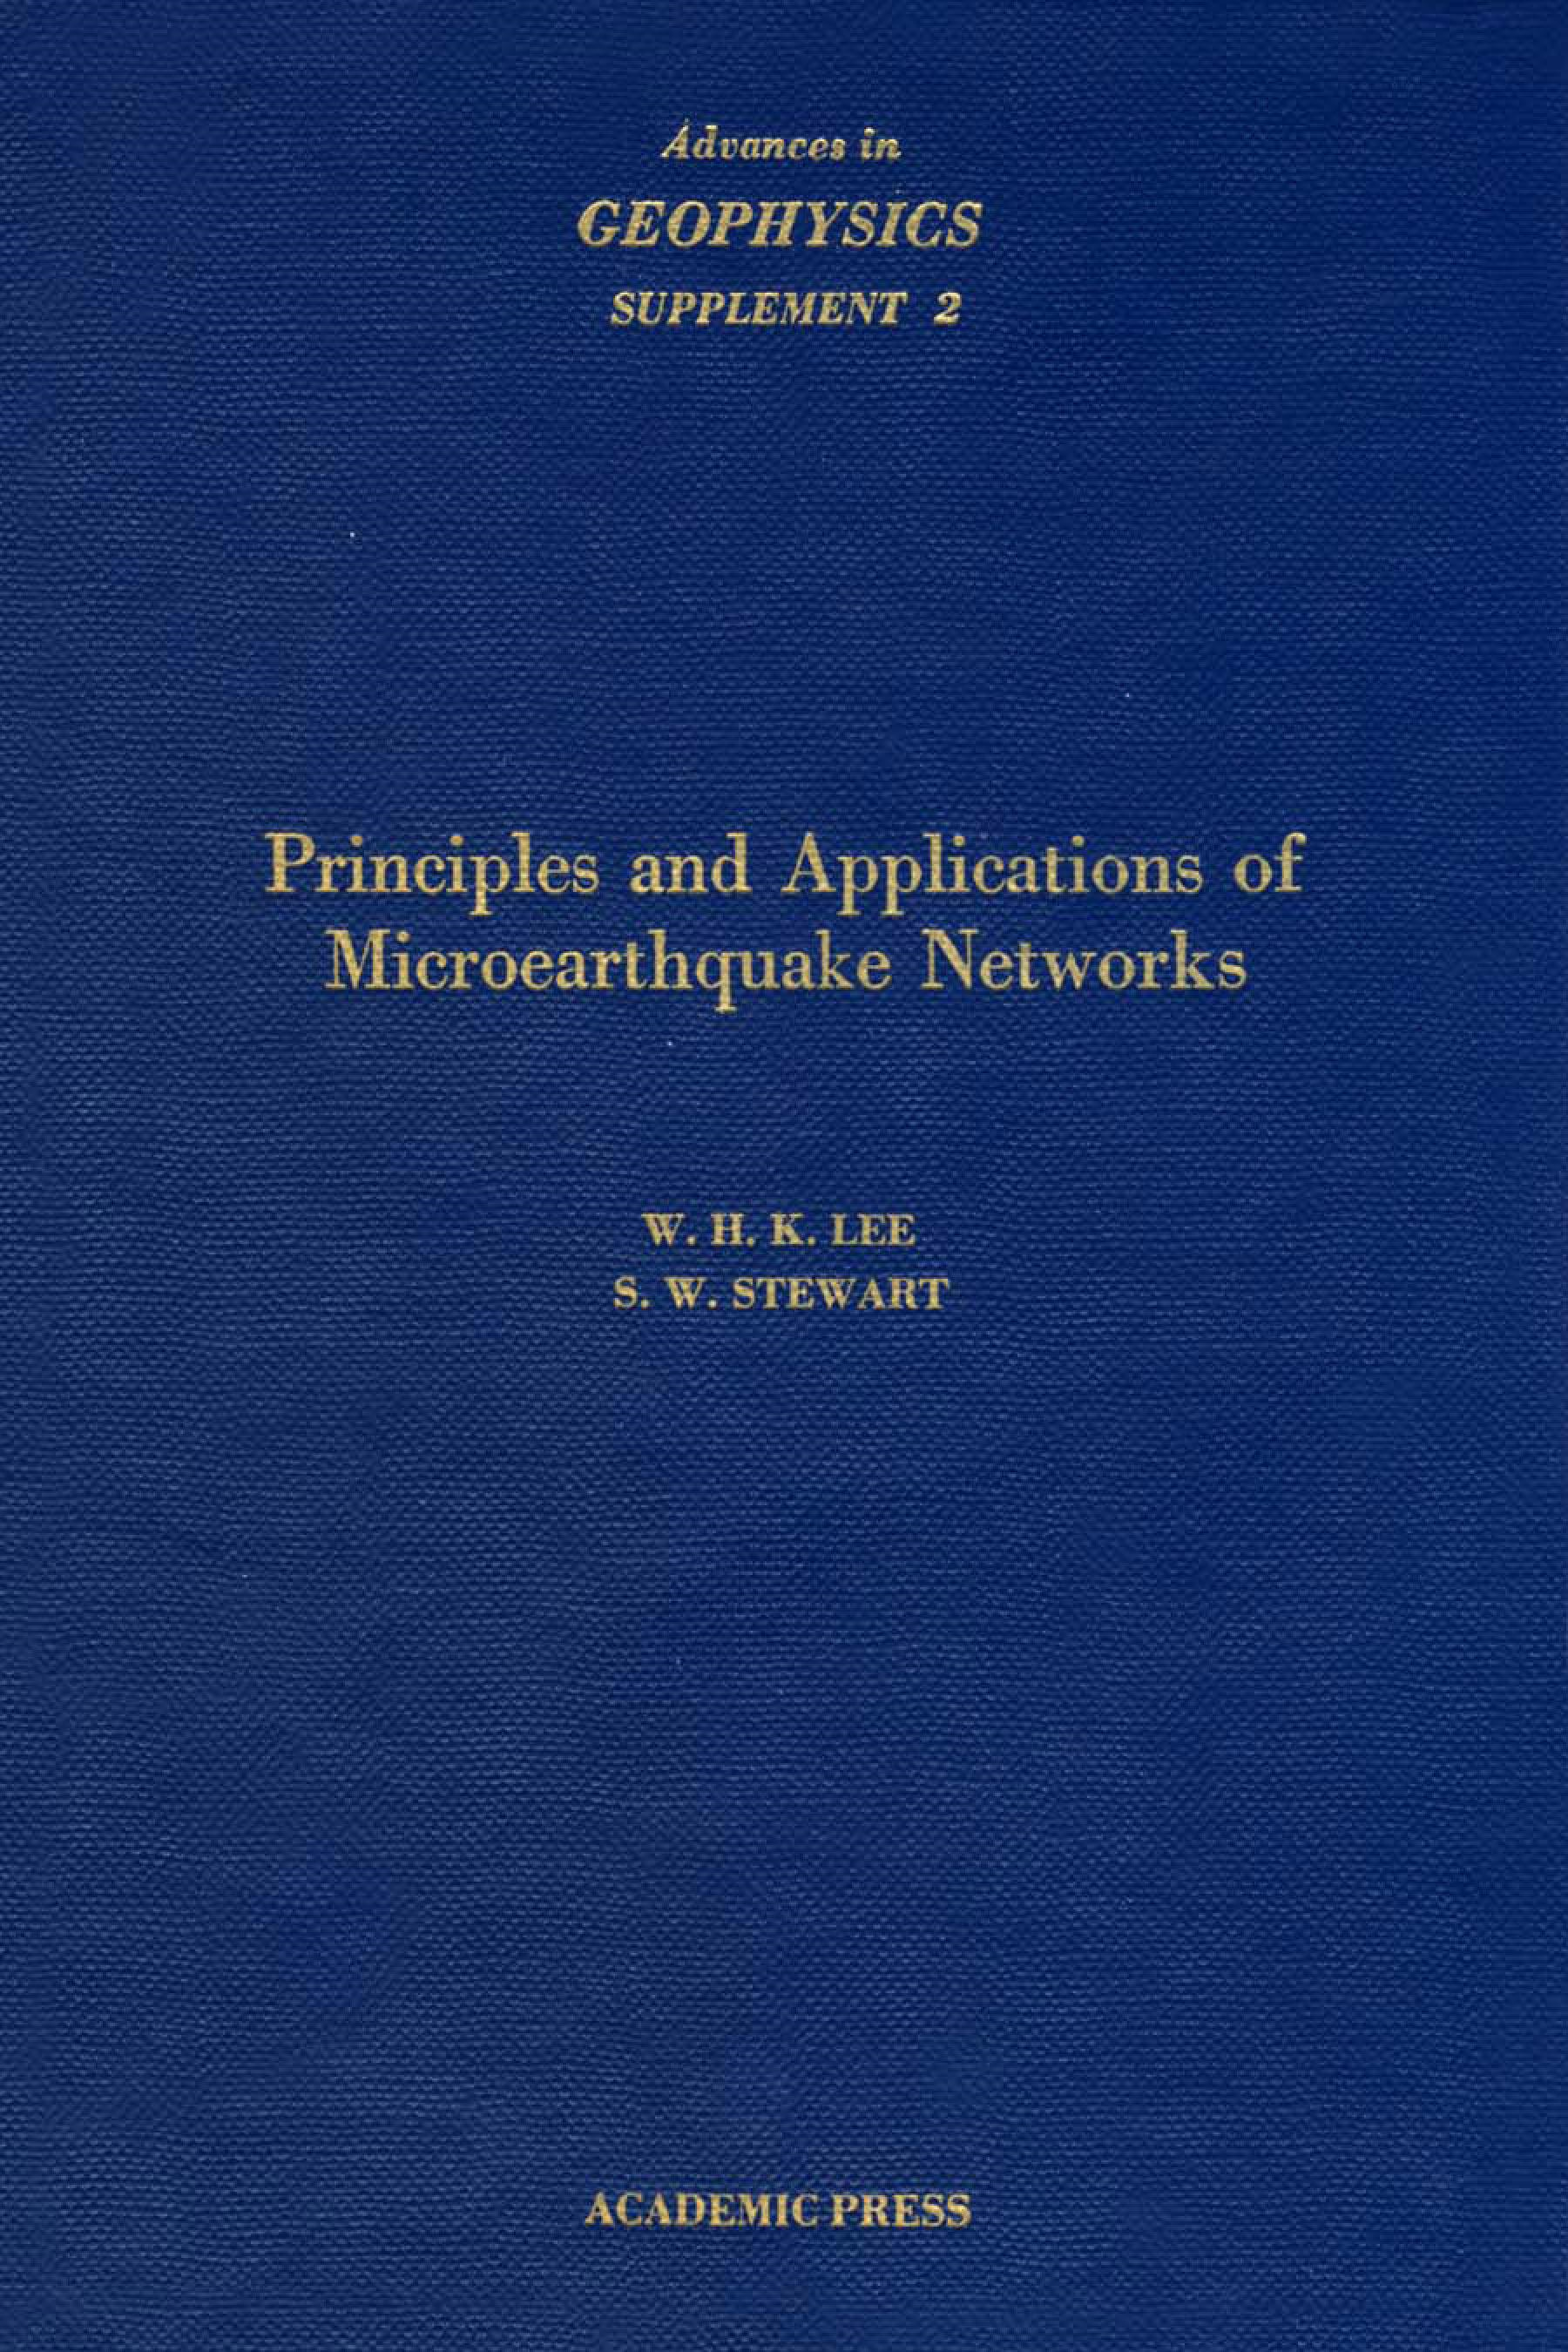 Principles and Applications of Microearthquake Networks, Volume 2